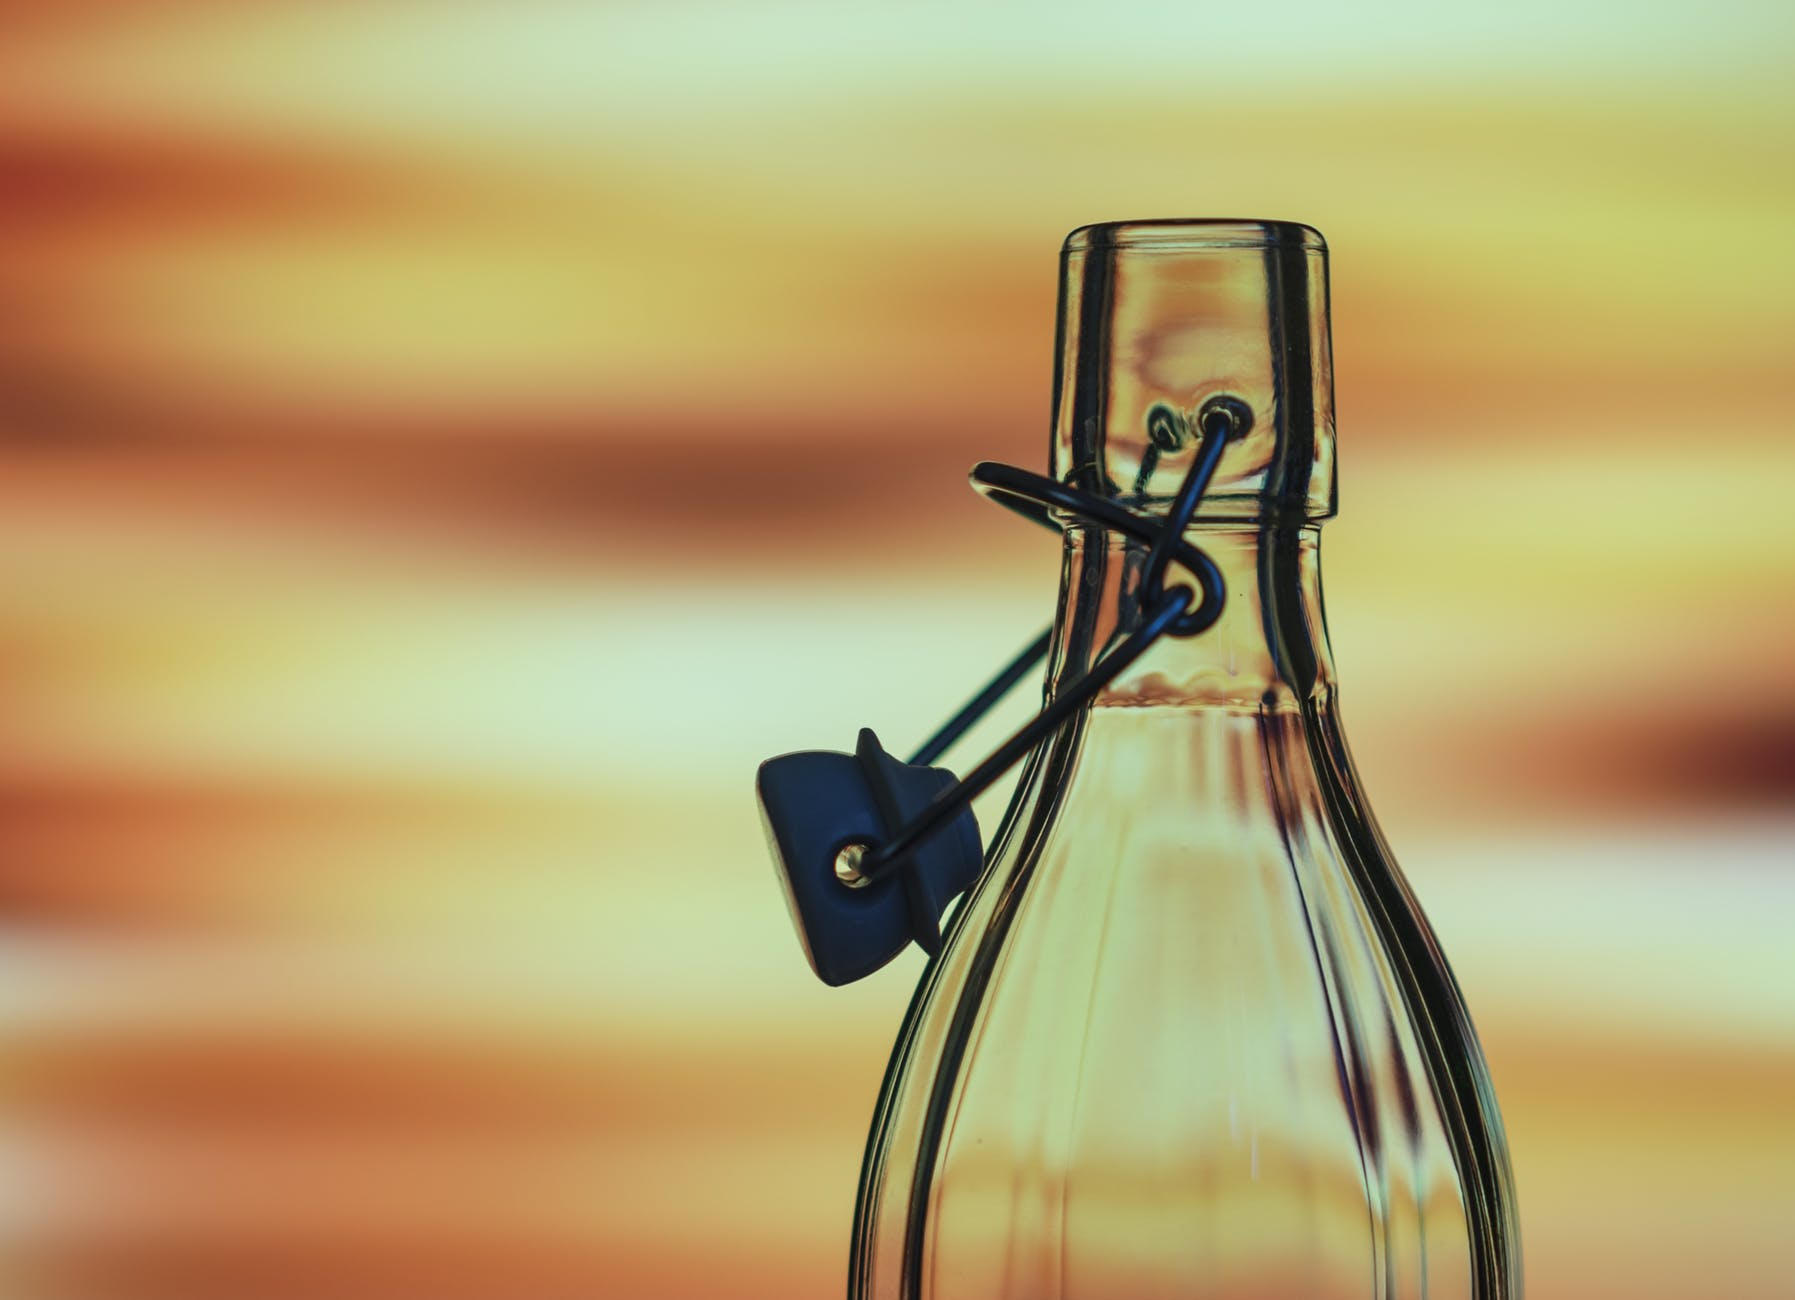 background blur bottle bright